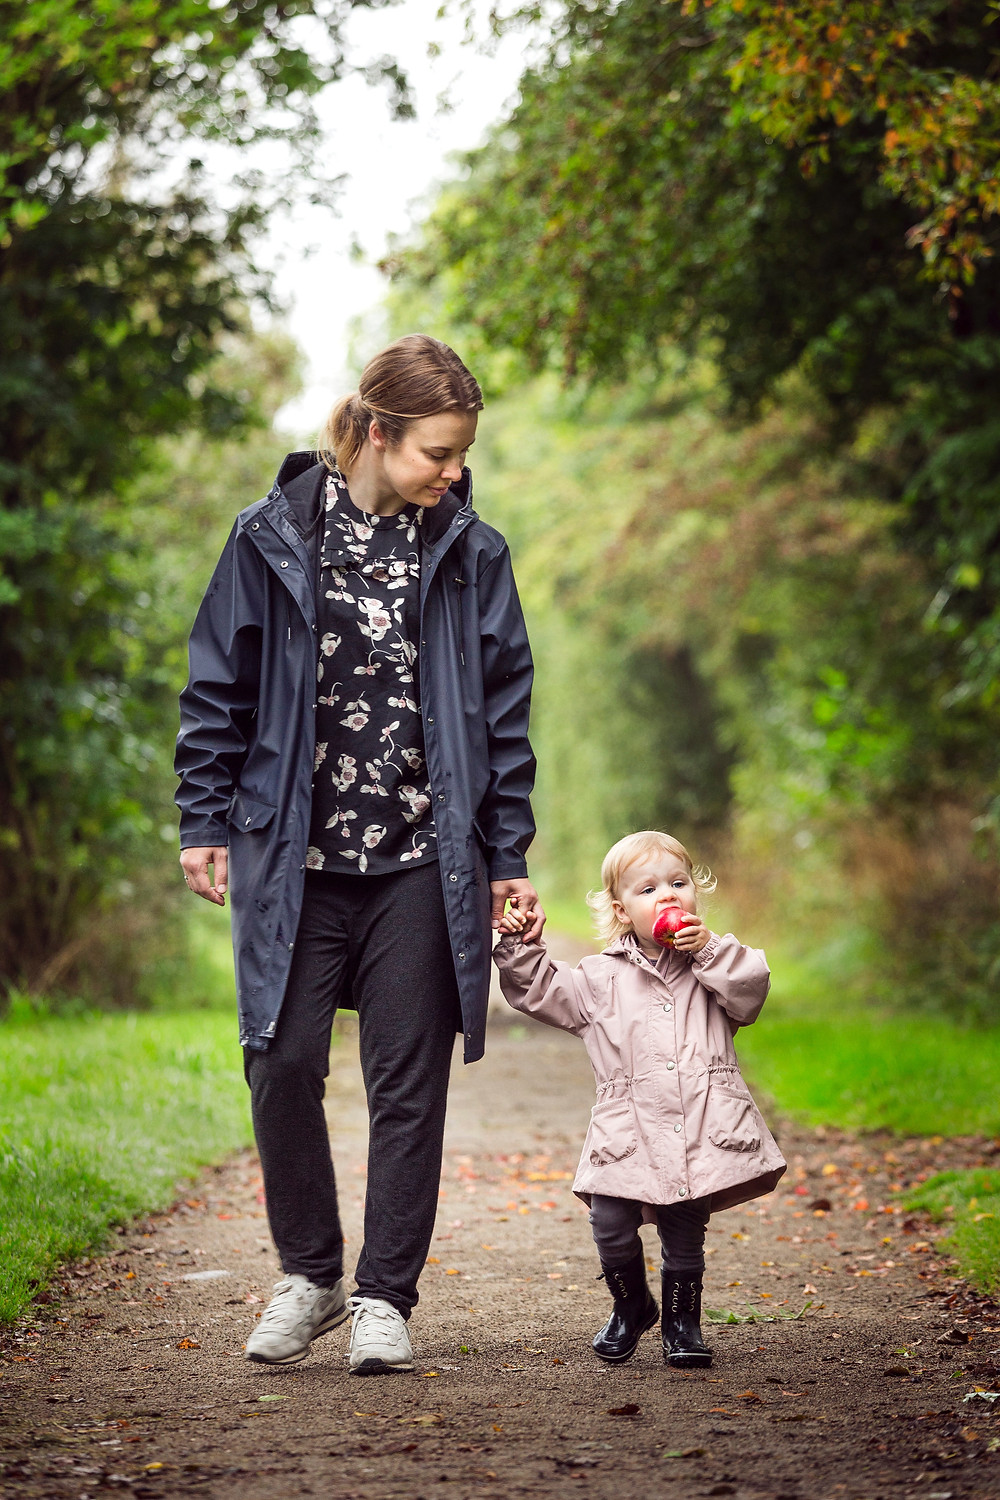 Woman and baby going for walk